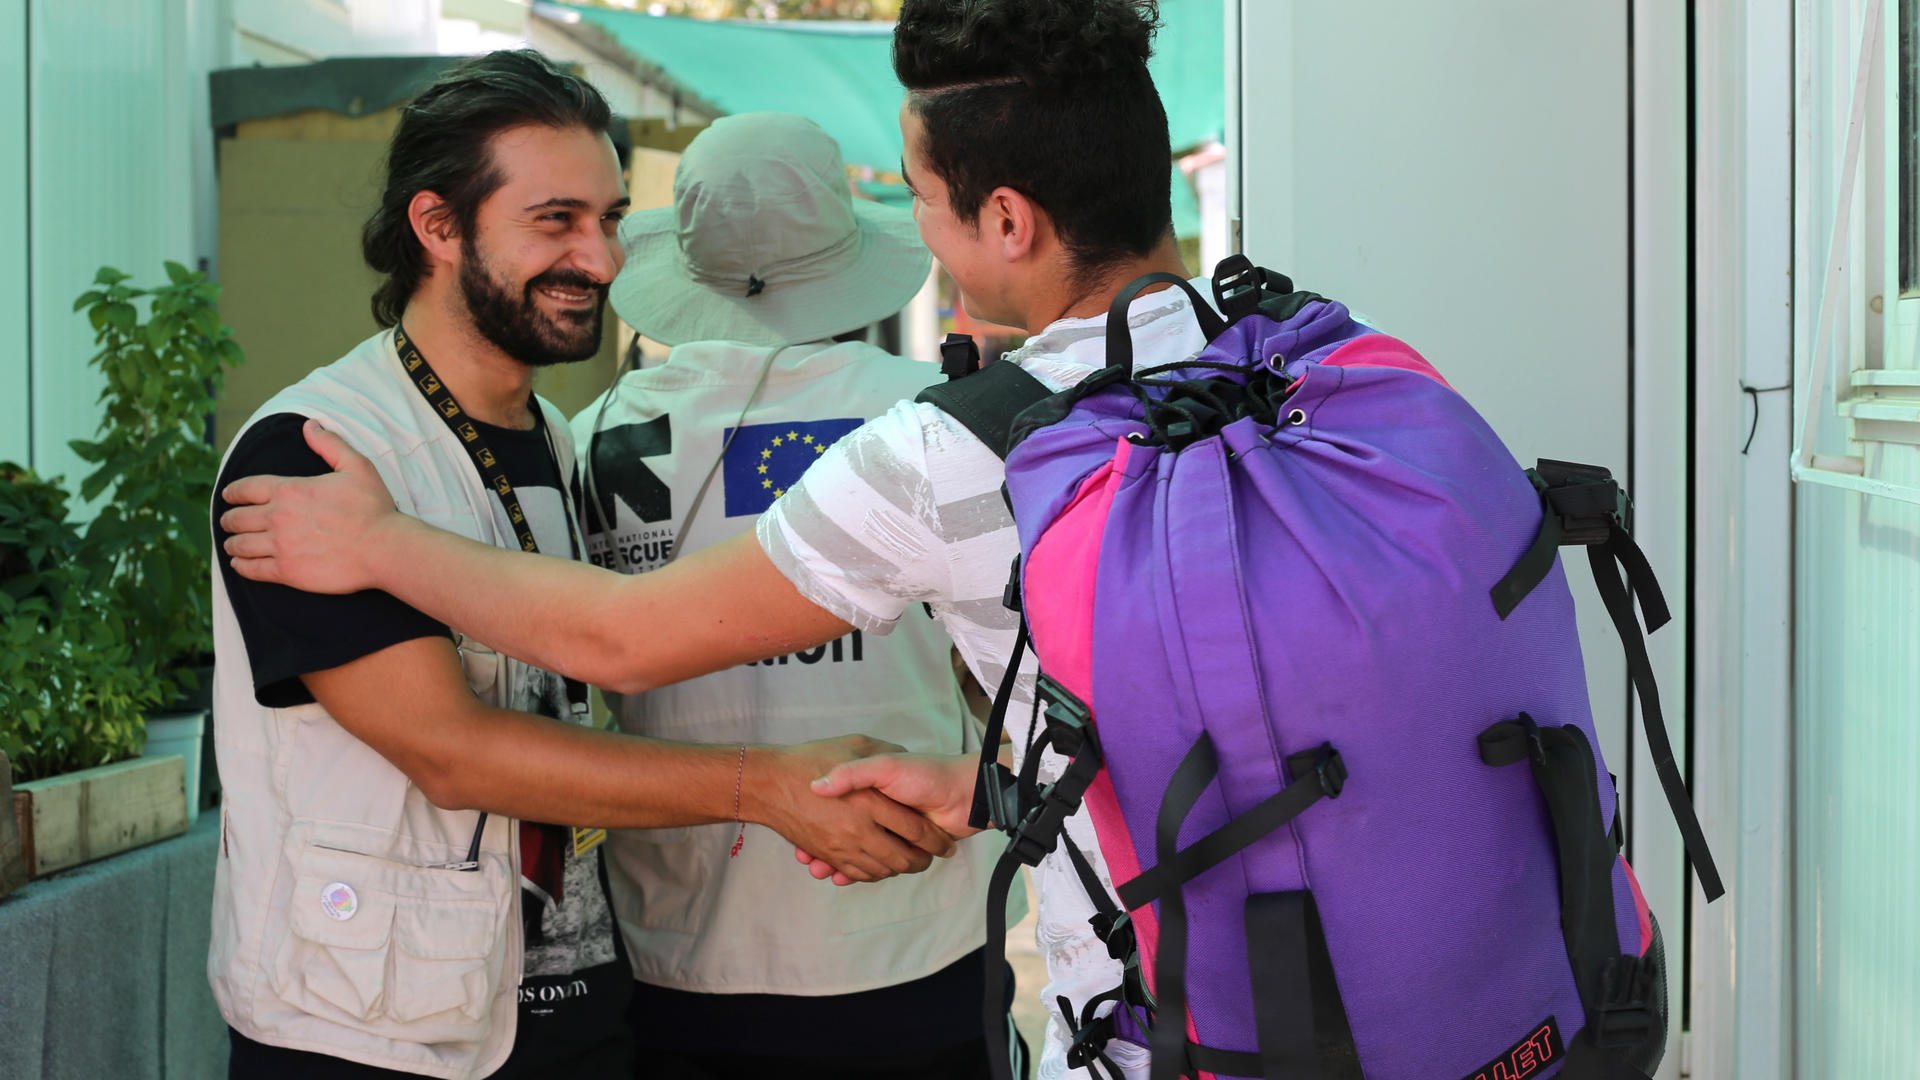 A teenage refugee boy and an IRC aid worker shake hands as the boy leaves a refugee camp in Greece